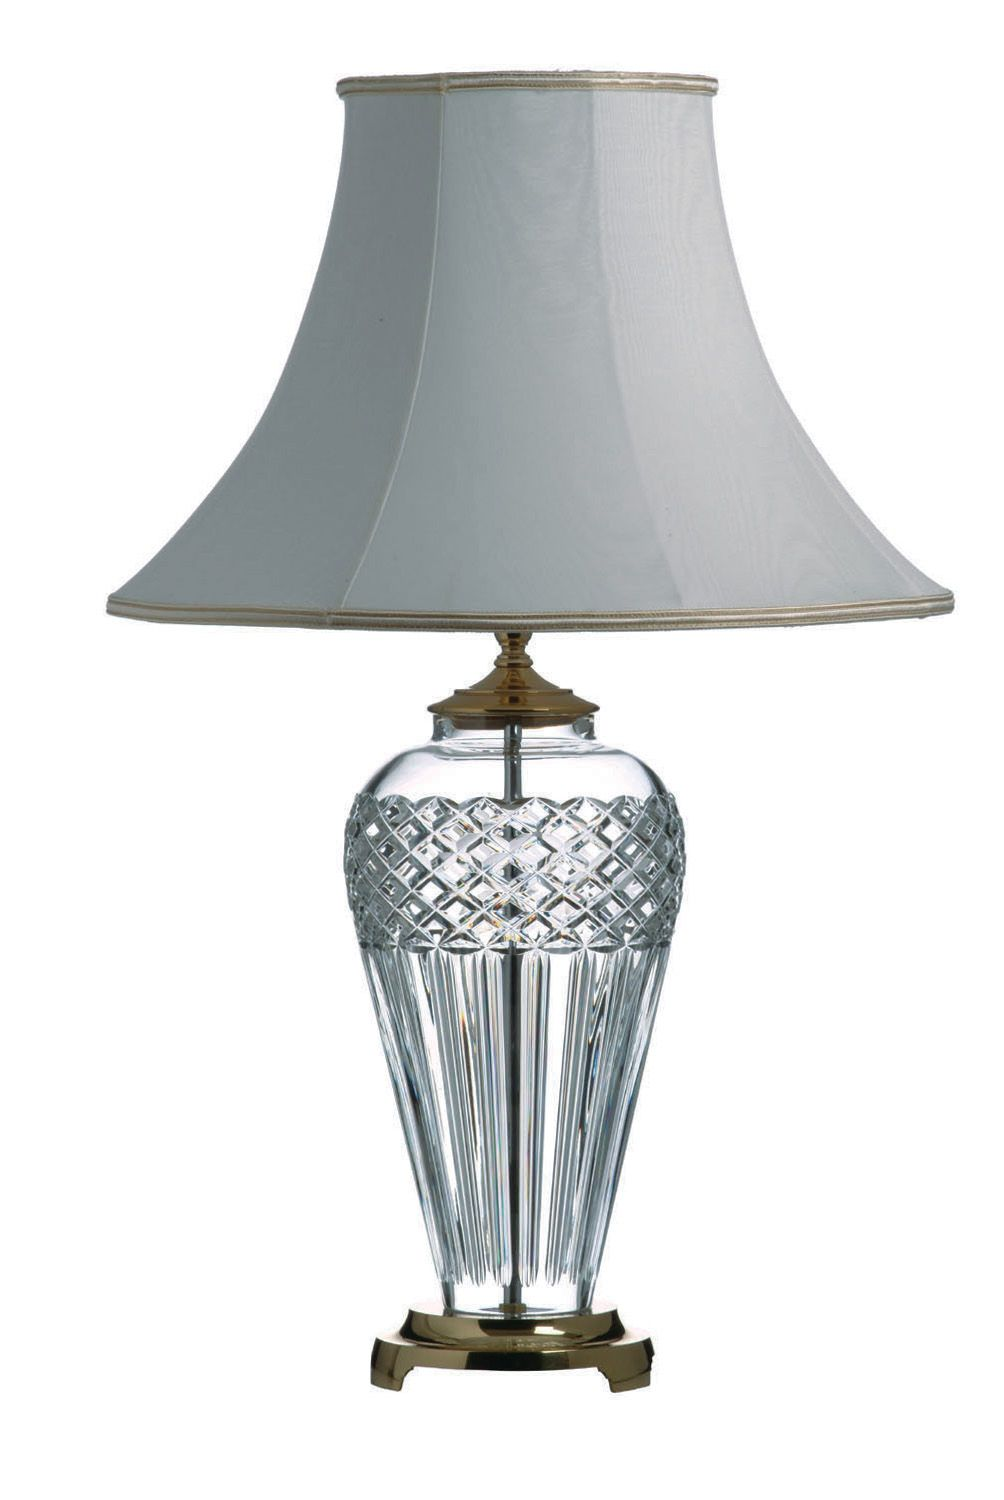 ceramic table lamps waterford crystal table lamps cheap. Black Bedroom Furniture Sets. Home Design Ideas